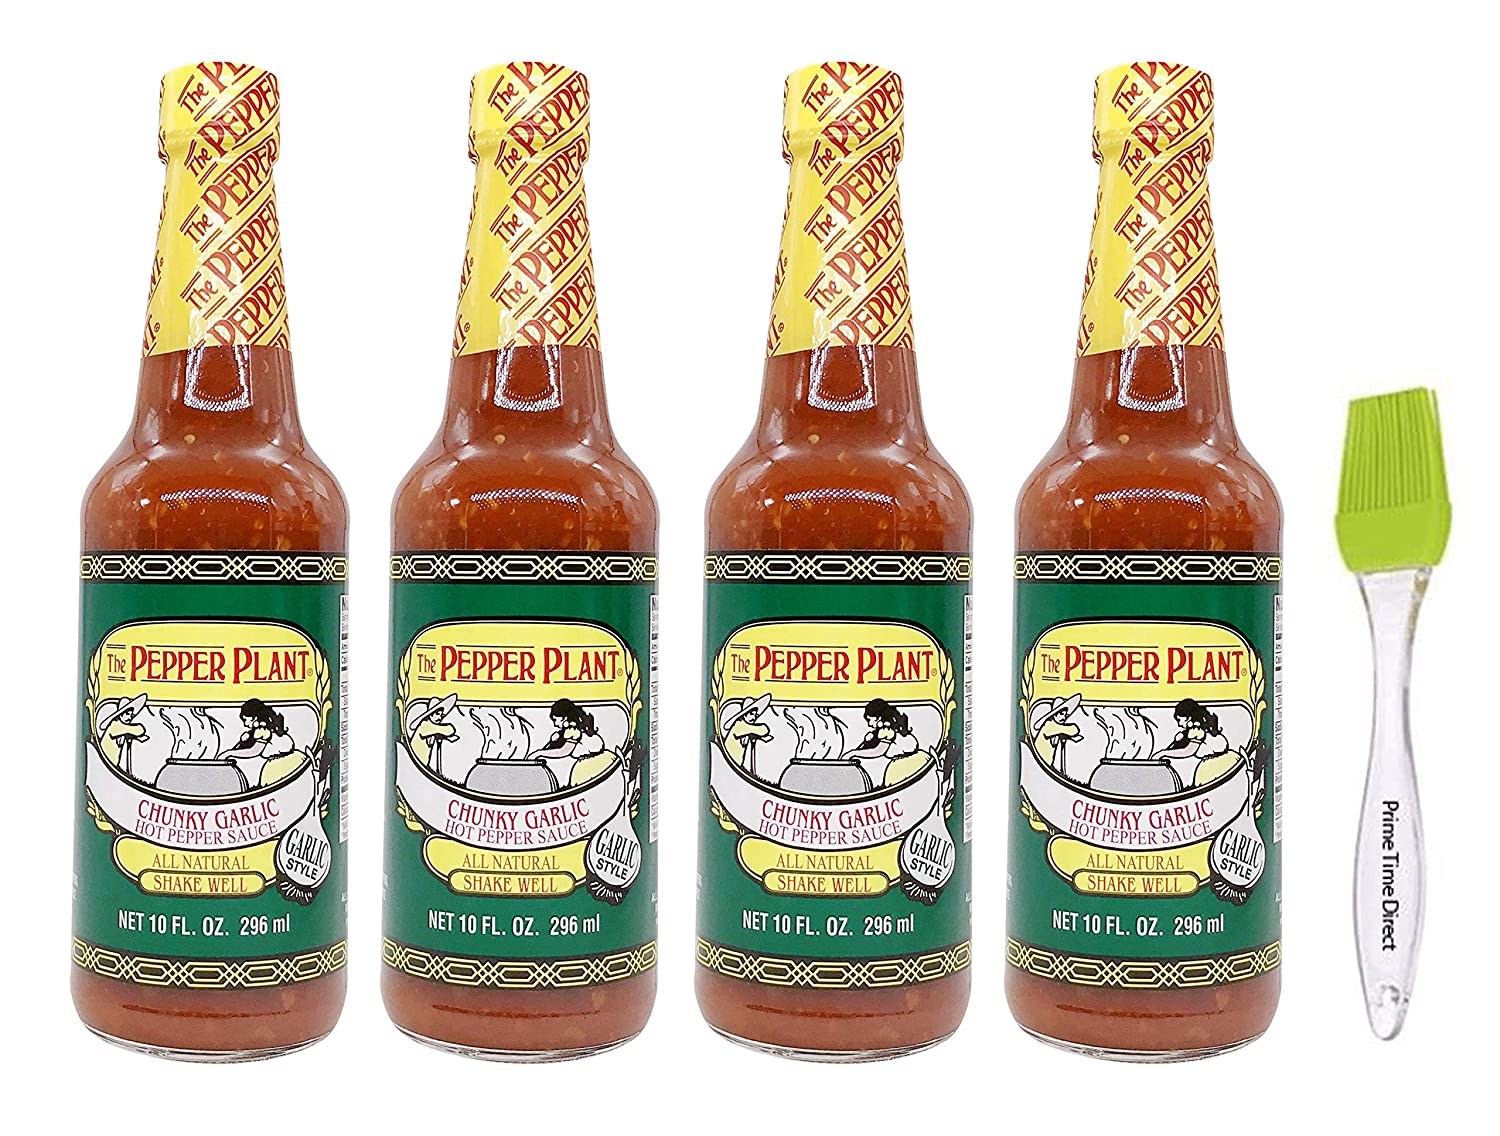 Pepper Plant Chunky Garlic Hot Pepper Sauce 10 oz (Pack of 4) Bundled with PrimeTime Direct Silicone Basting Brush in a PTD Sealed Bag